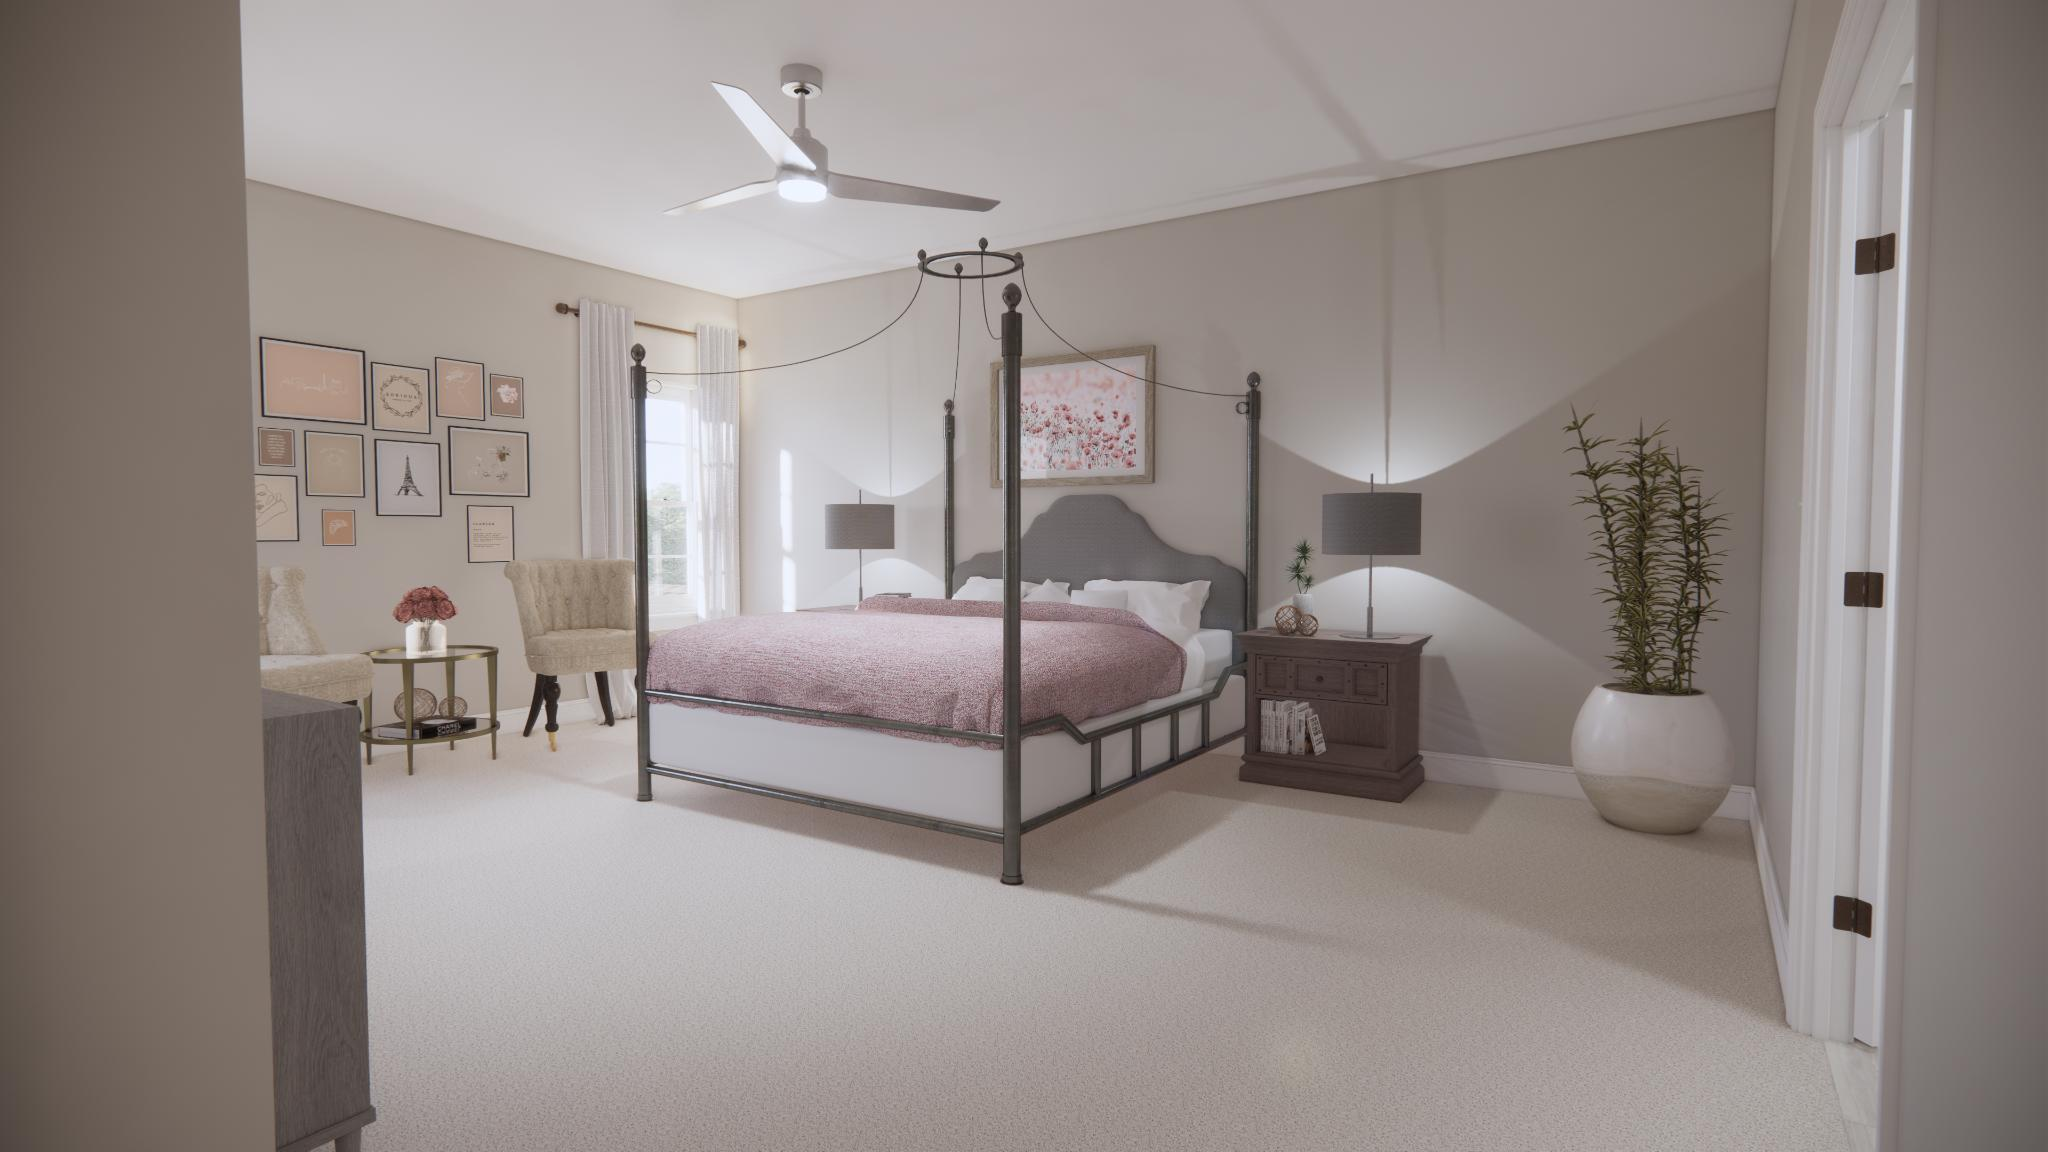 Bedroom featured in the Avondale By Main Street Homes in Richmond-Petersburg, VA